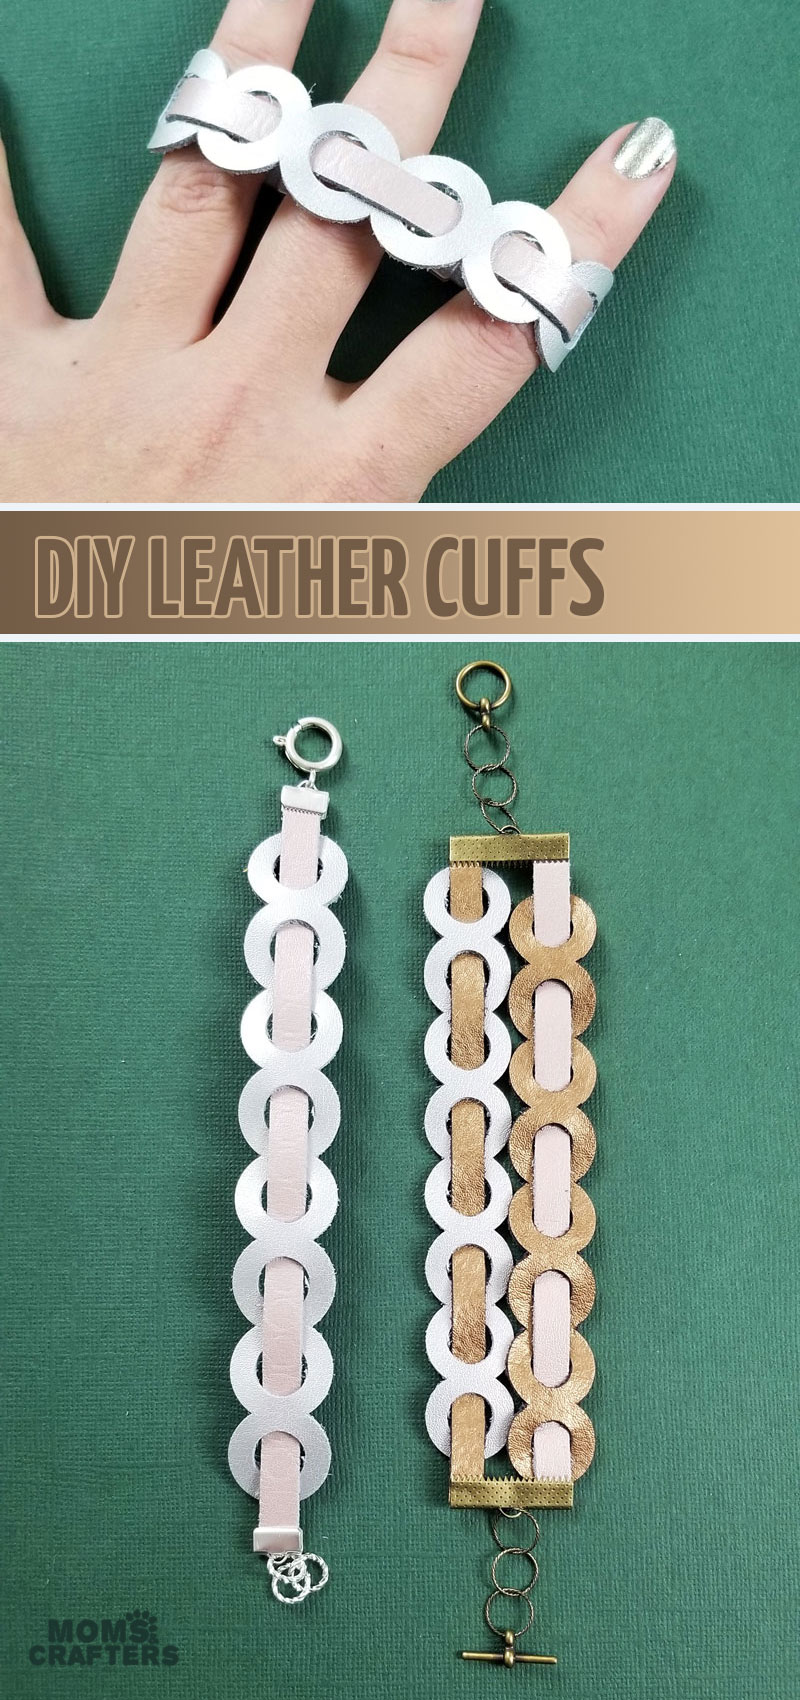 Make DIY leather cuffs with a free template! Use the free SVG or PDF AND learn how to make woven leather cuffs using Cricut - a fun cricut maker project for beginners and a sweet leather jewelry craft.